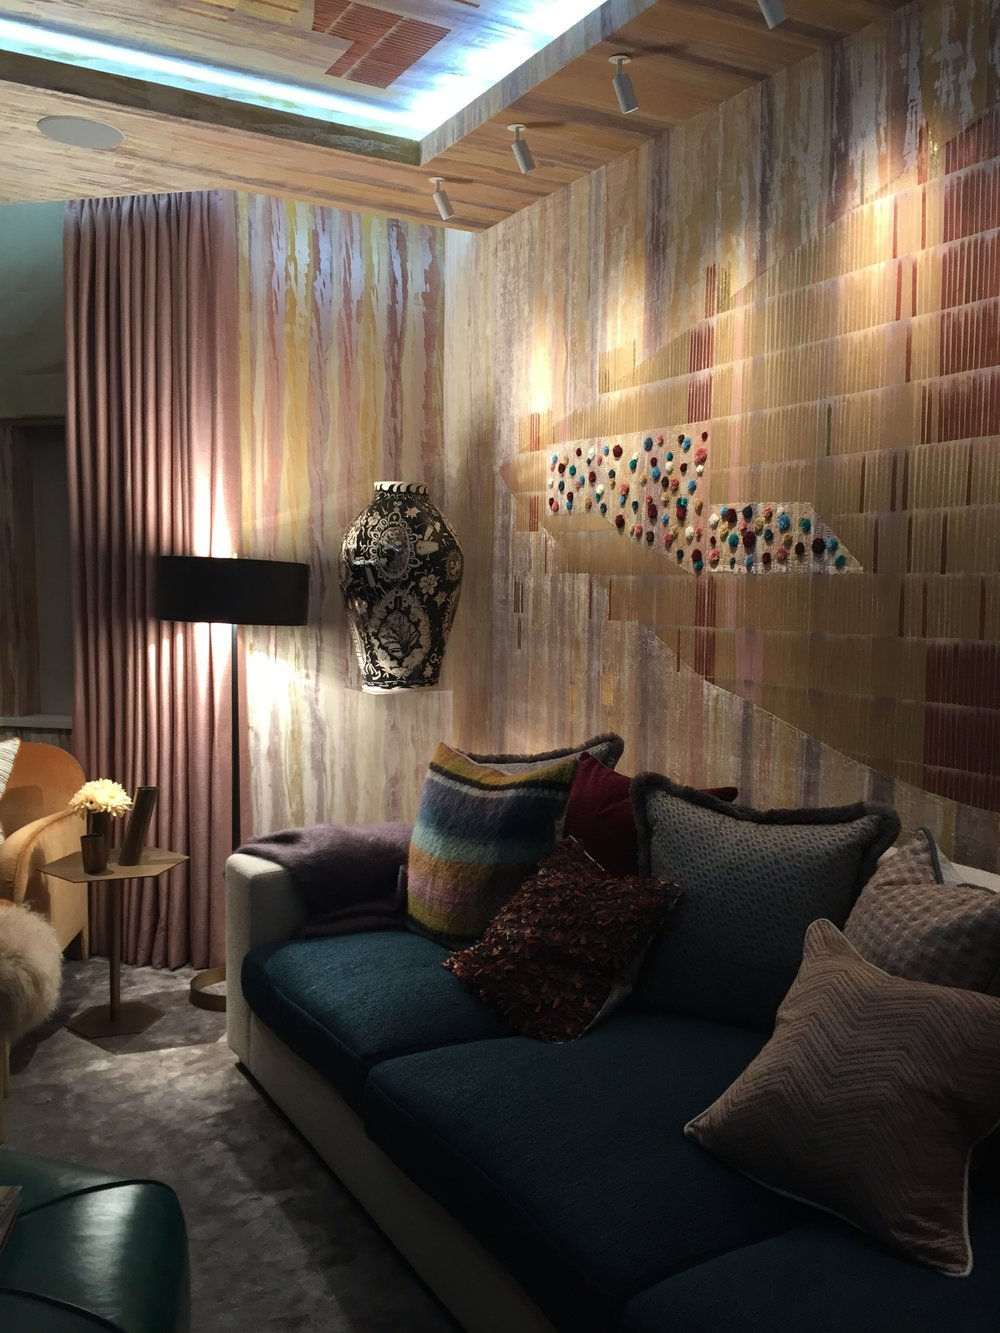 Holiday House London, An Interior Design Event With A Cause - The Snug by Natalia Miyar Atelier x LuxDeco.JPG